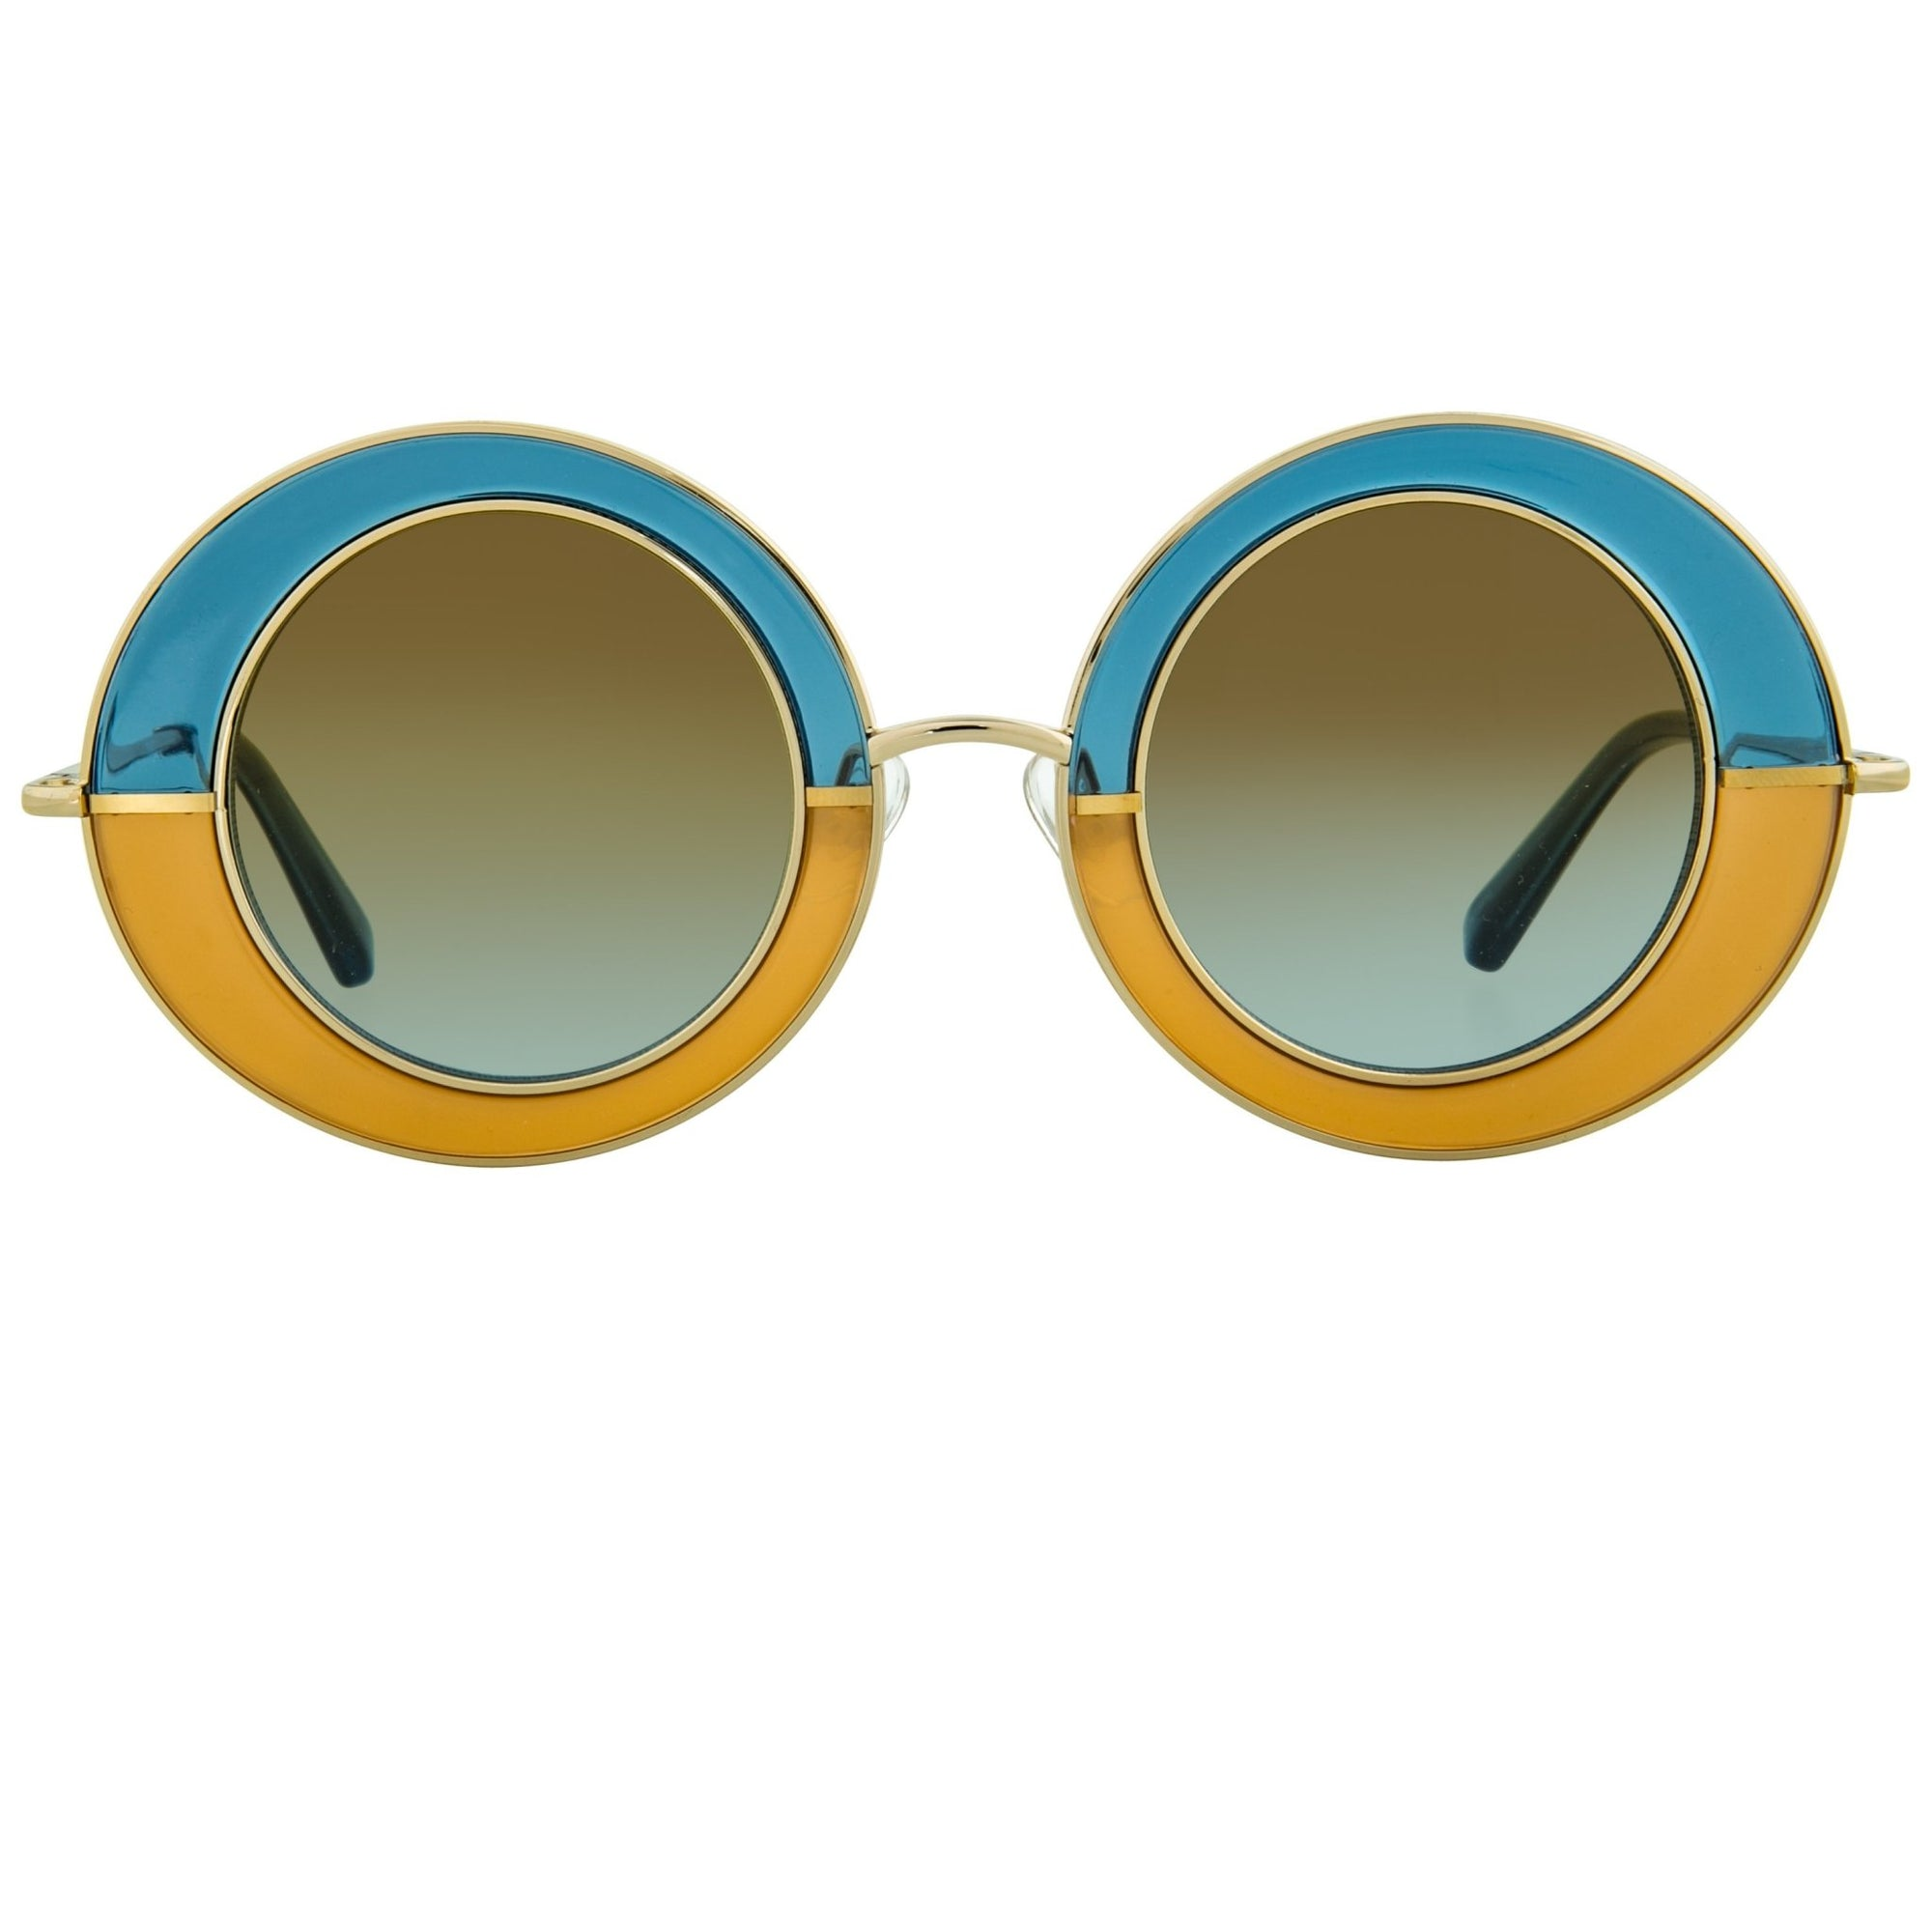 Erdem Women Sunglasses Oval Transparent Blue Amber Gold with Brown Blue Graduated Lenses EDM27C1SUN - Watches & Crystals